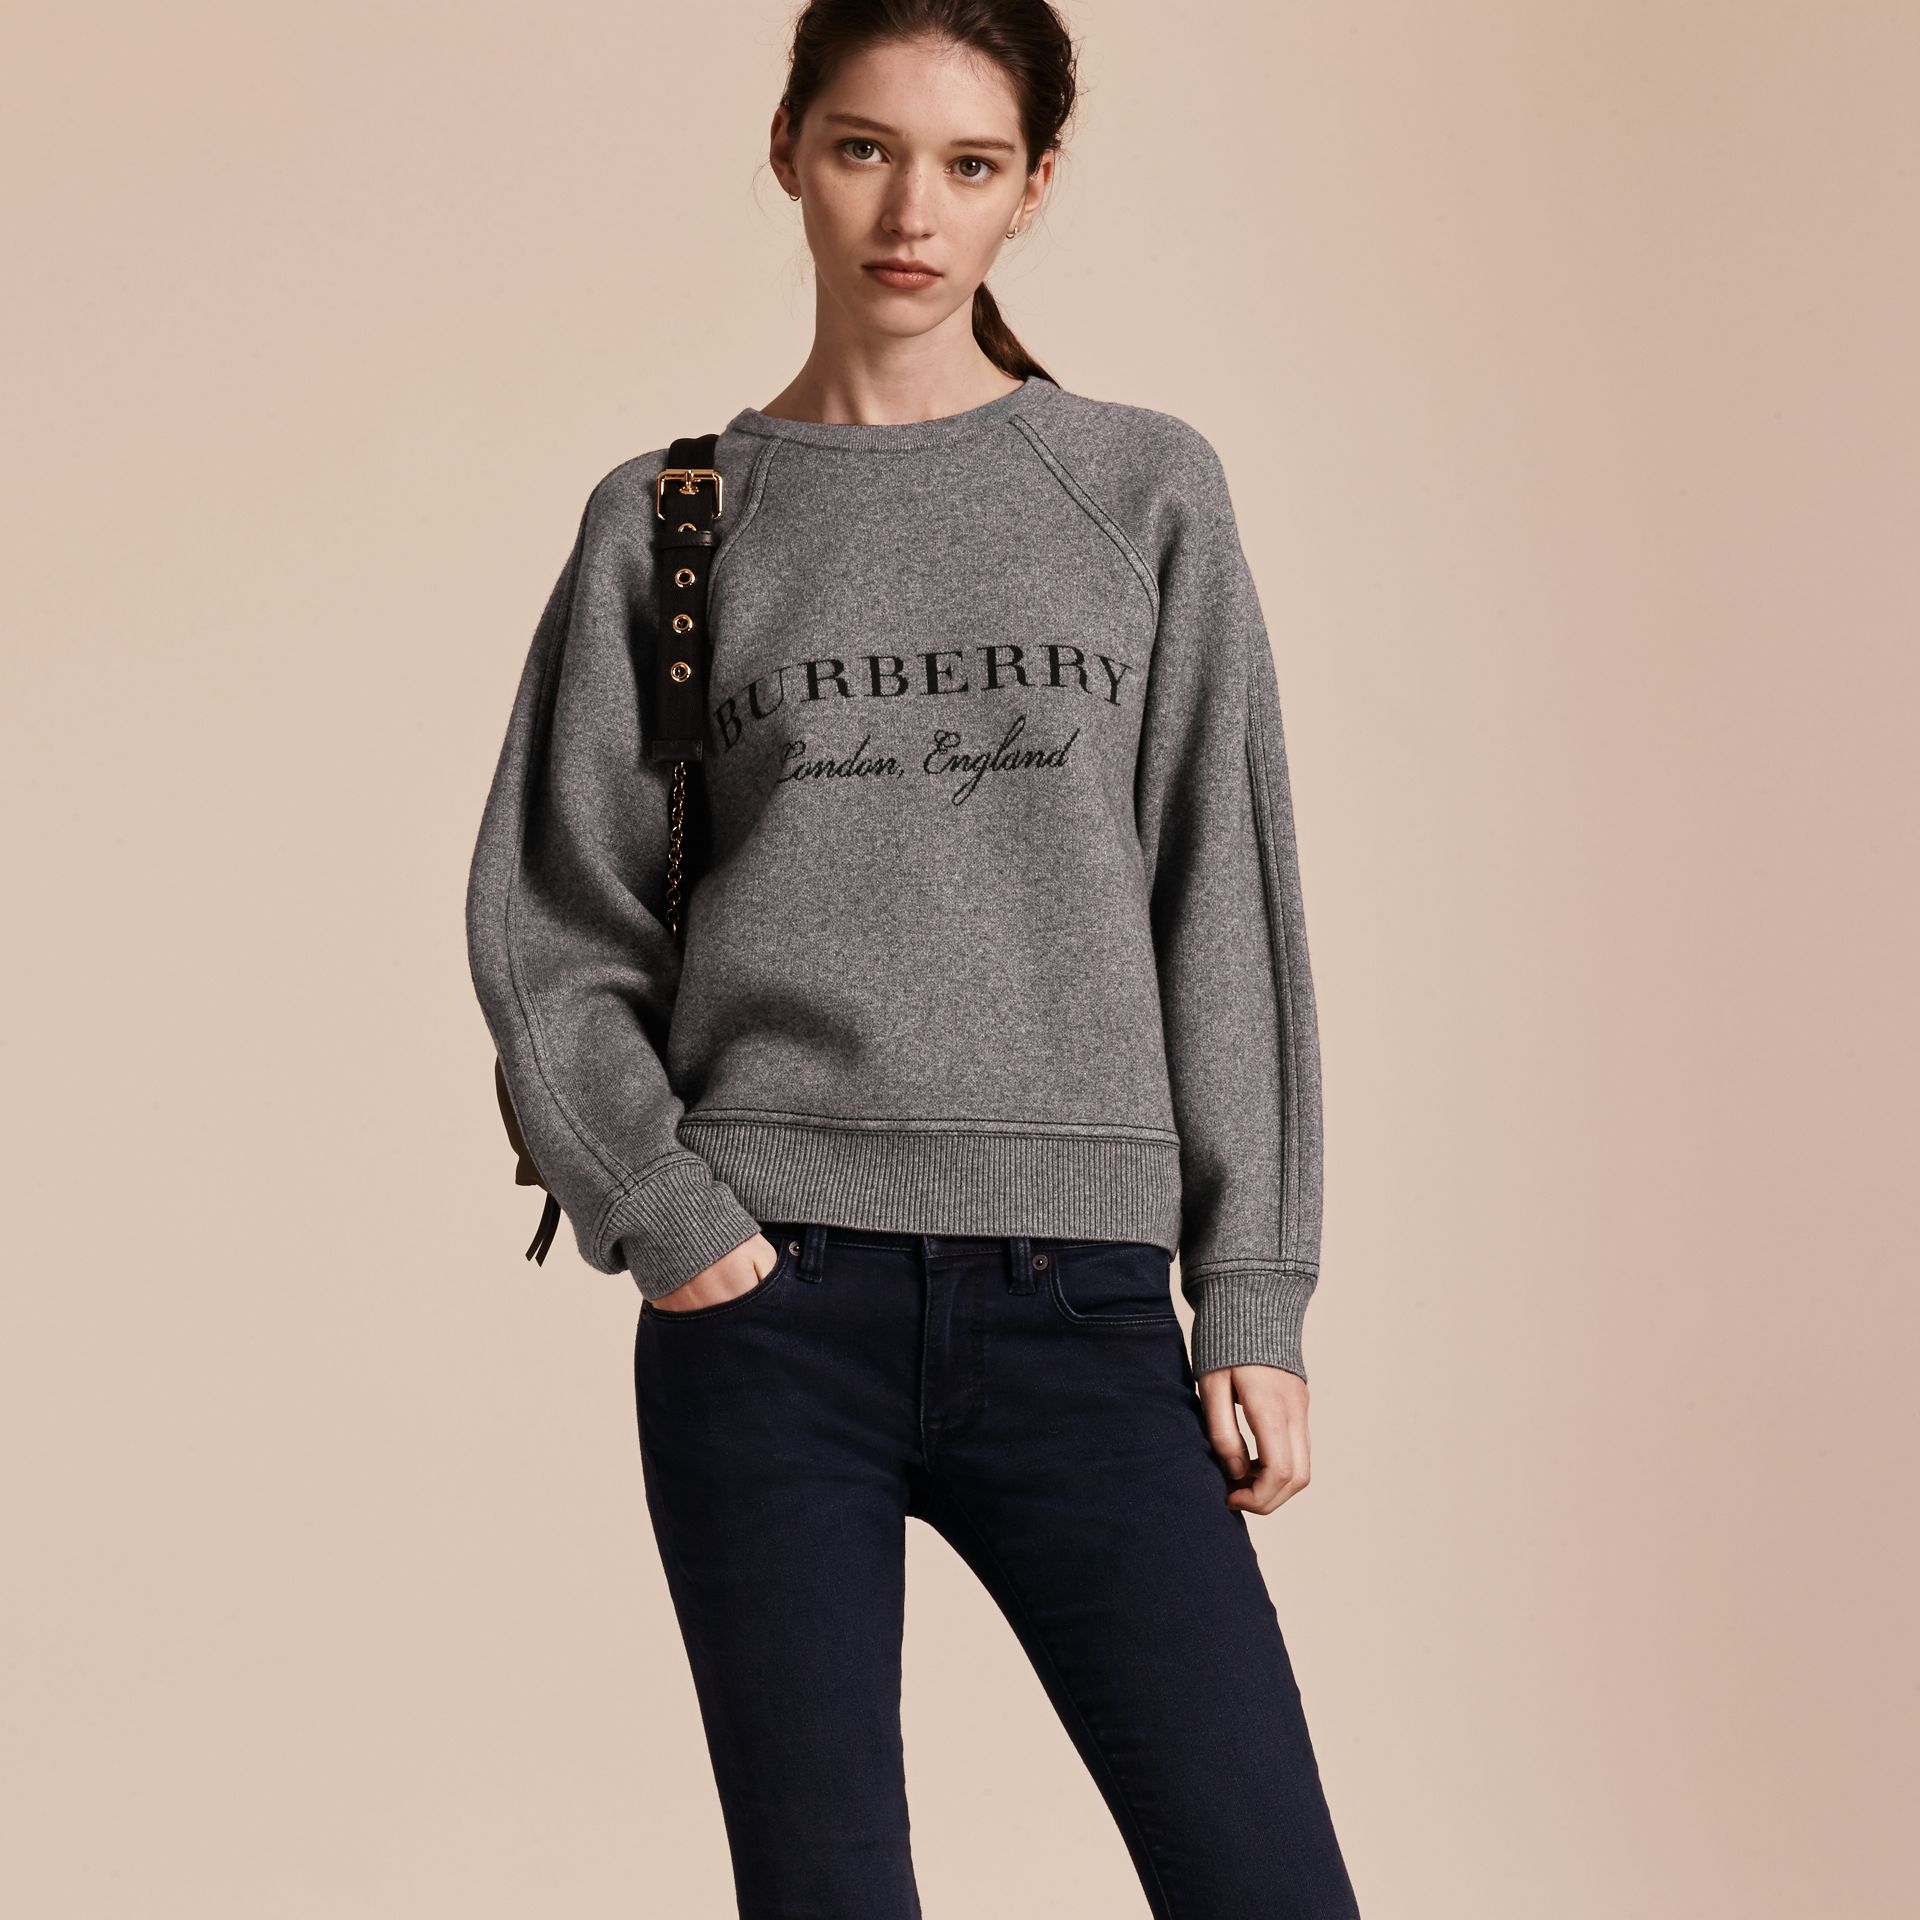 Topstitch Detail Wool Cashmere Blend Sweater in Mid Grey Melange - Women | Burberry Canada - gallery image 6